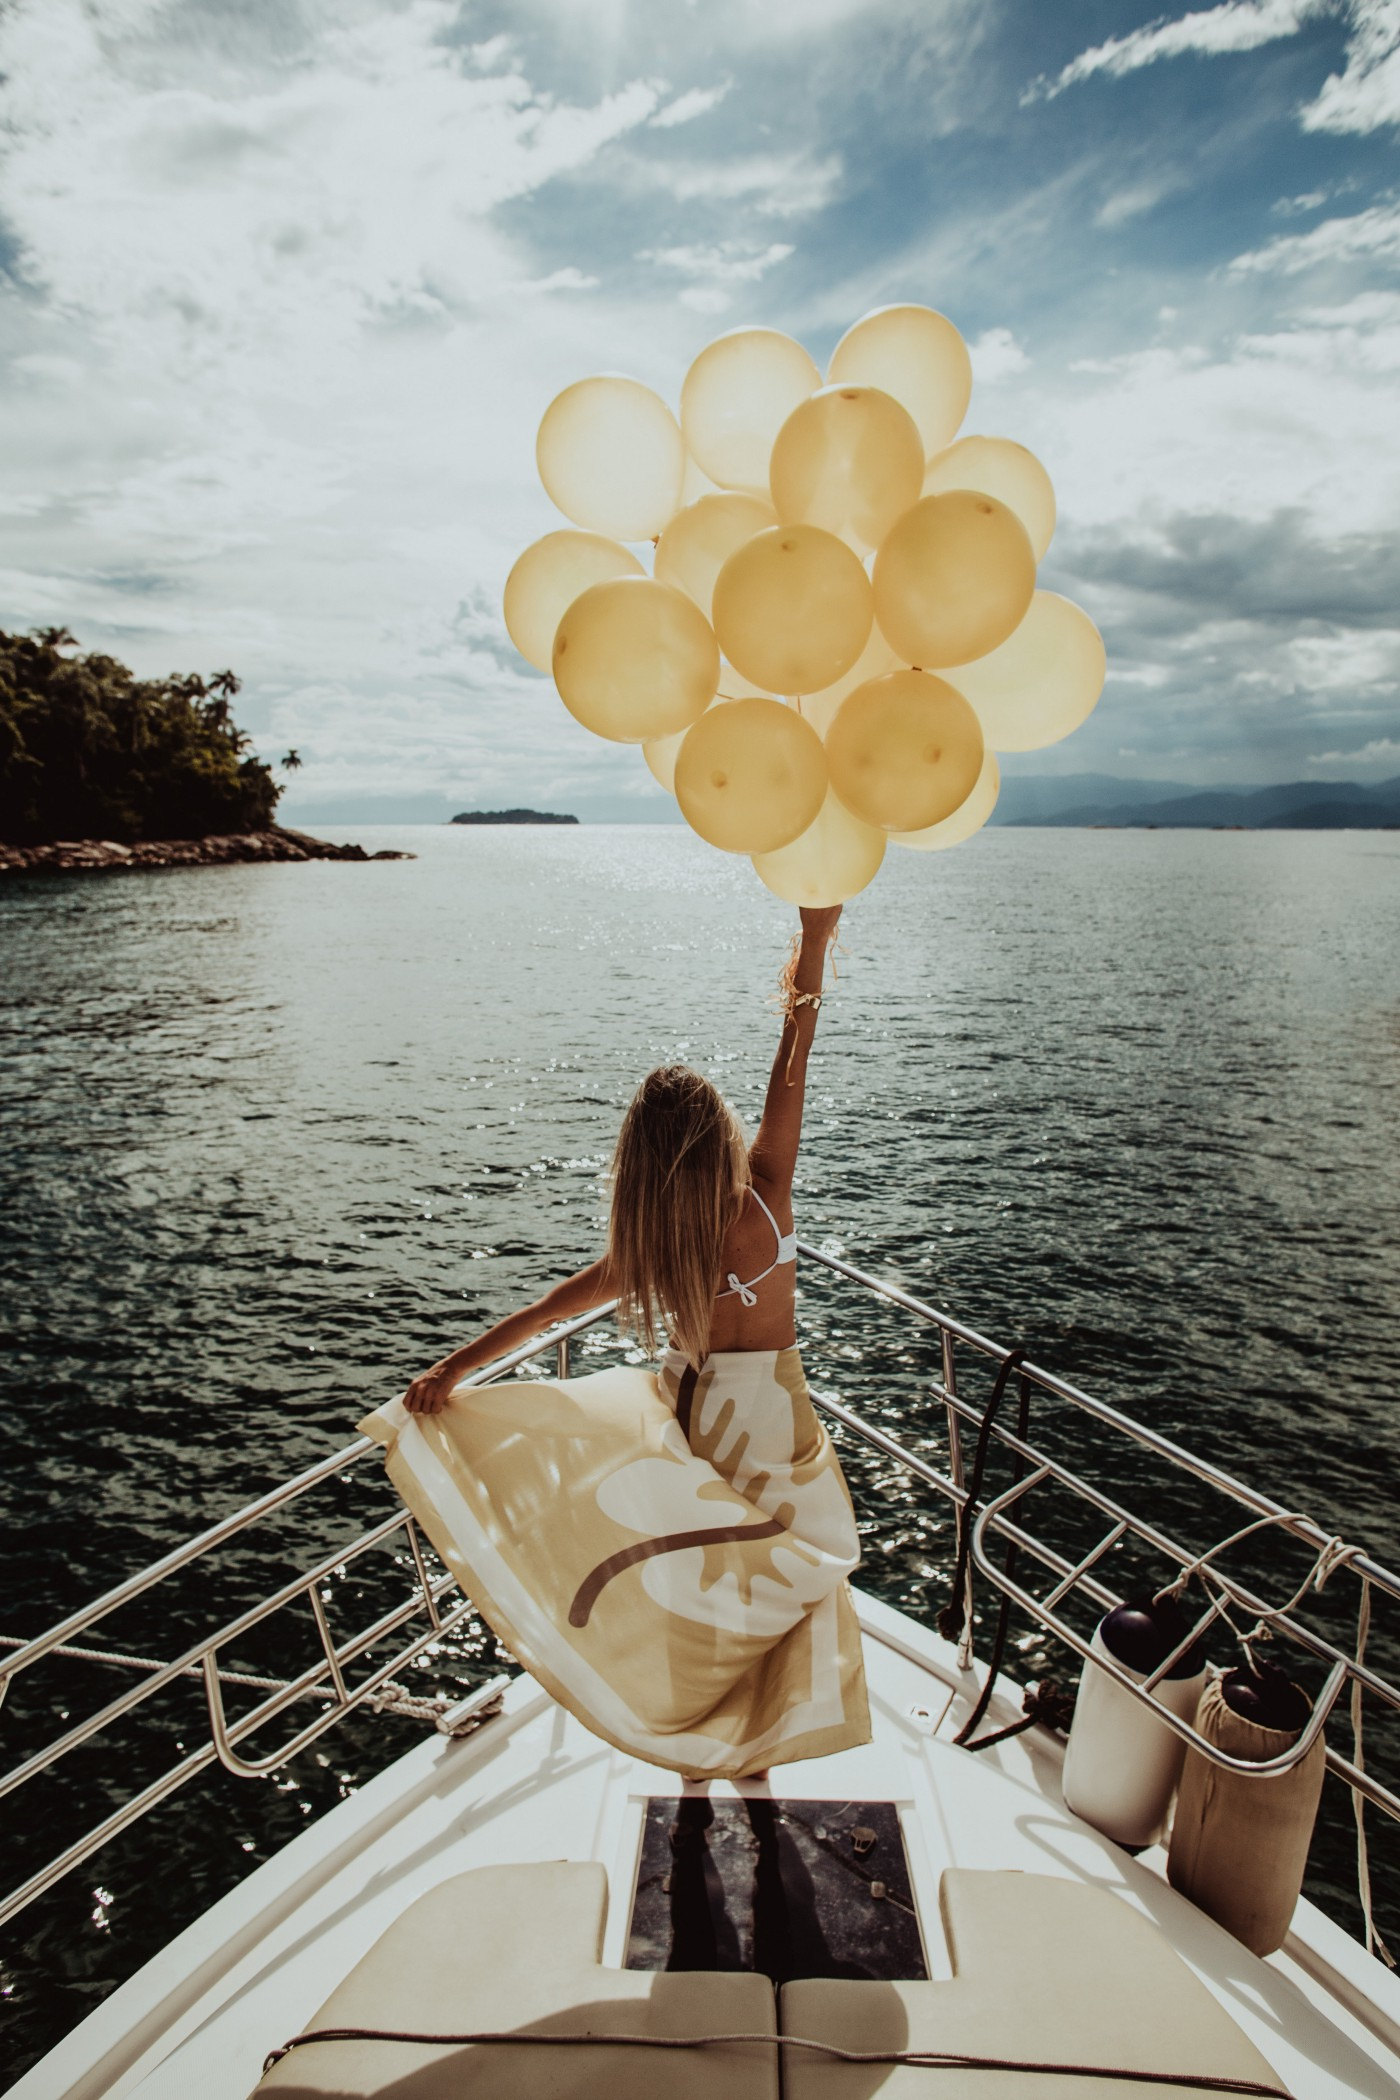 Woman wearing a dress on the bow of a yacht holding a large bouquet of balloons.